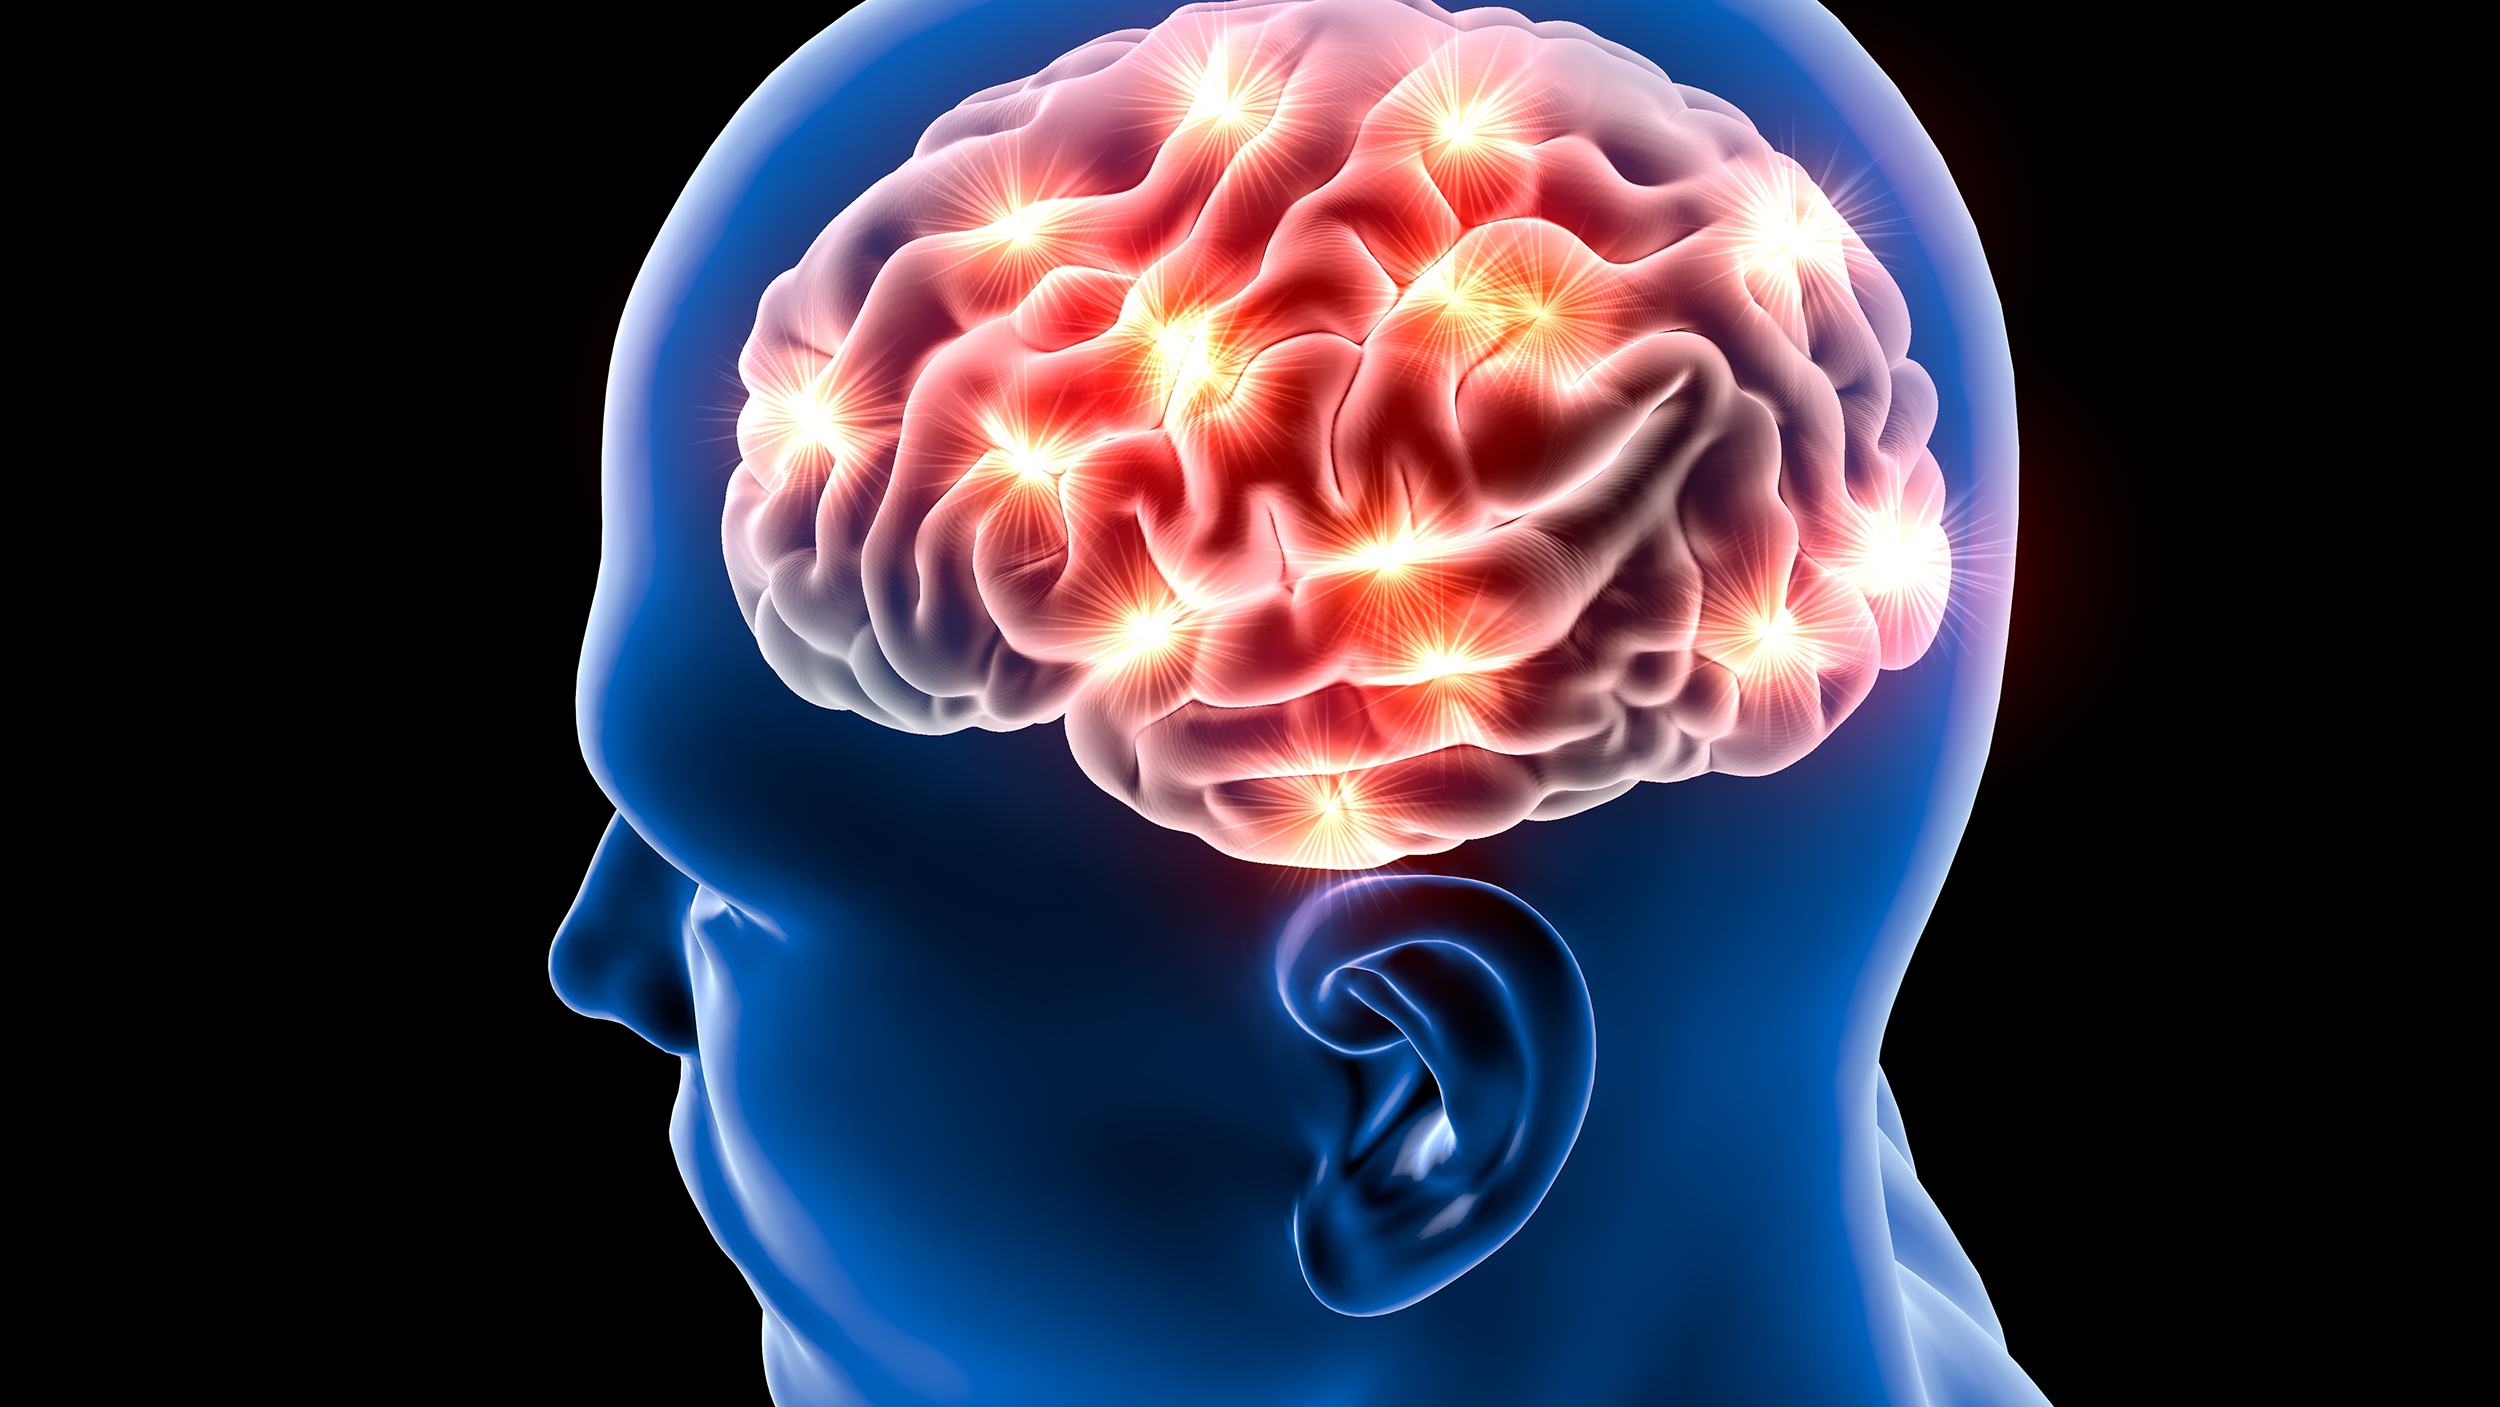 What Food That Is Good For The Brain